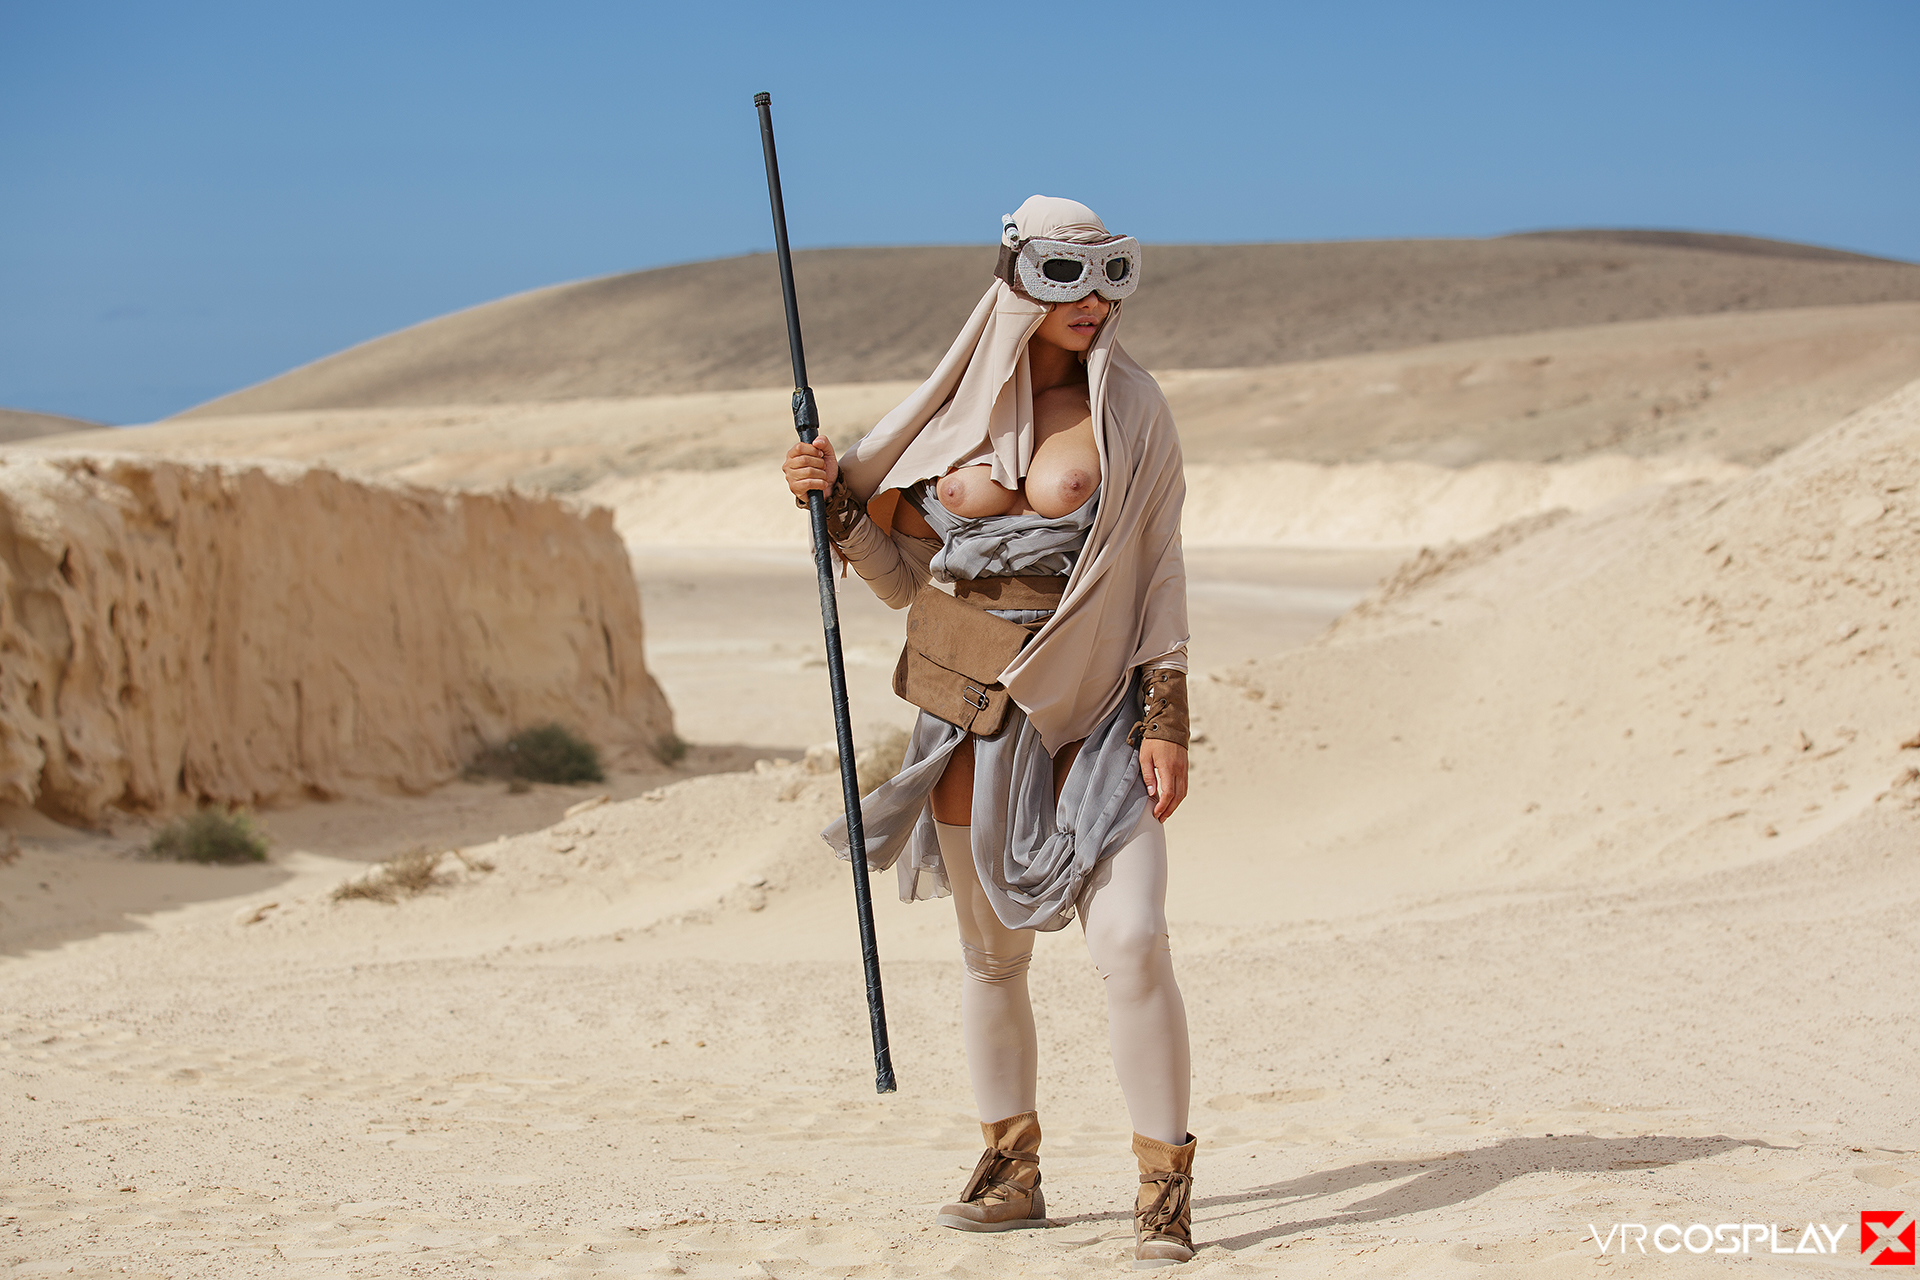 Star Wars Vr Porn Cosplay Starring Taylor Sands As Rey -4271